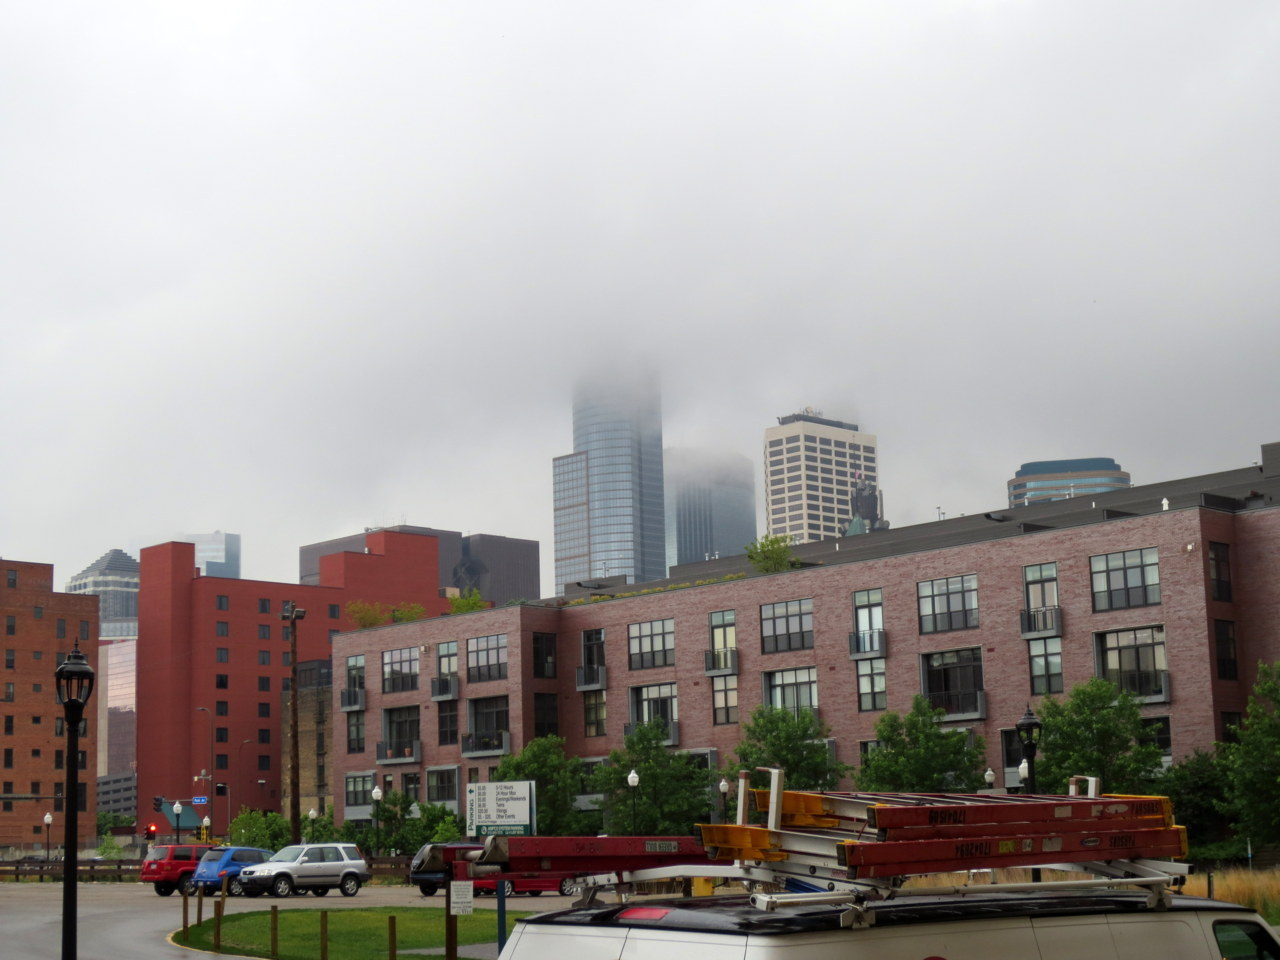 Sometimes Mill City wanders around with its head in the clouds.